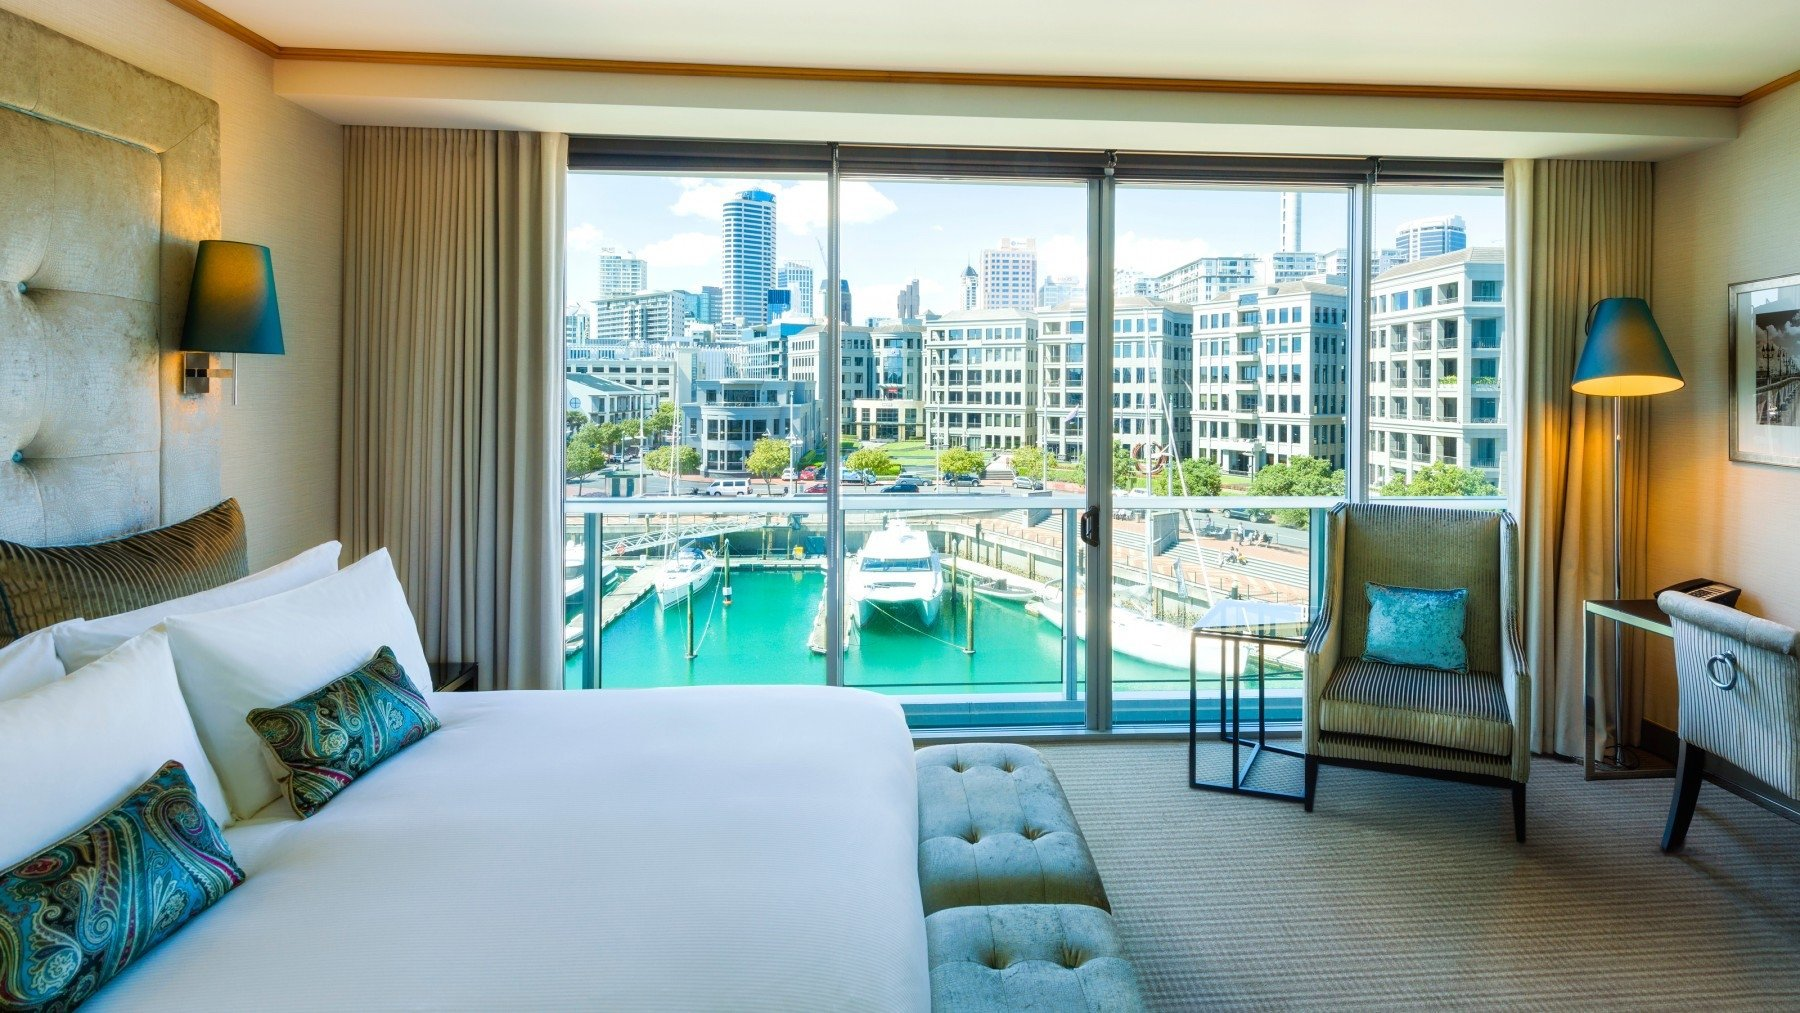 Luxury Marina View Room Sofitel Viaduct Harbour 5 star luxury hotel room